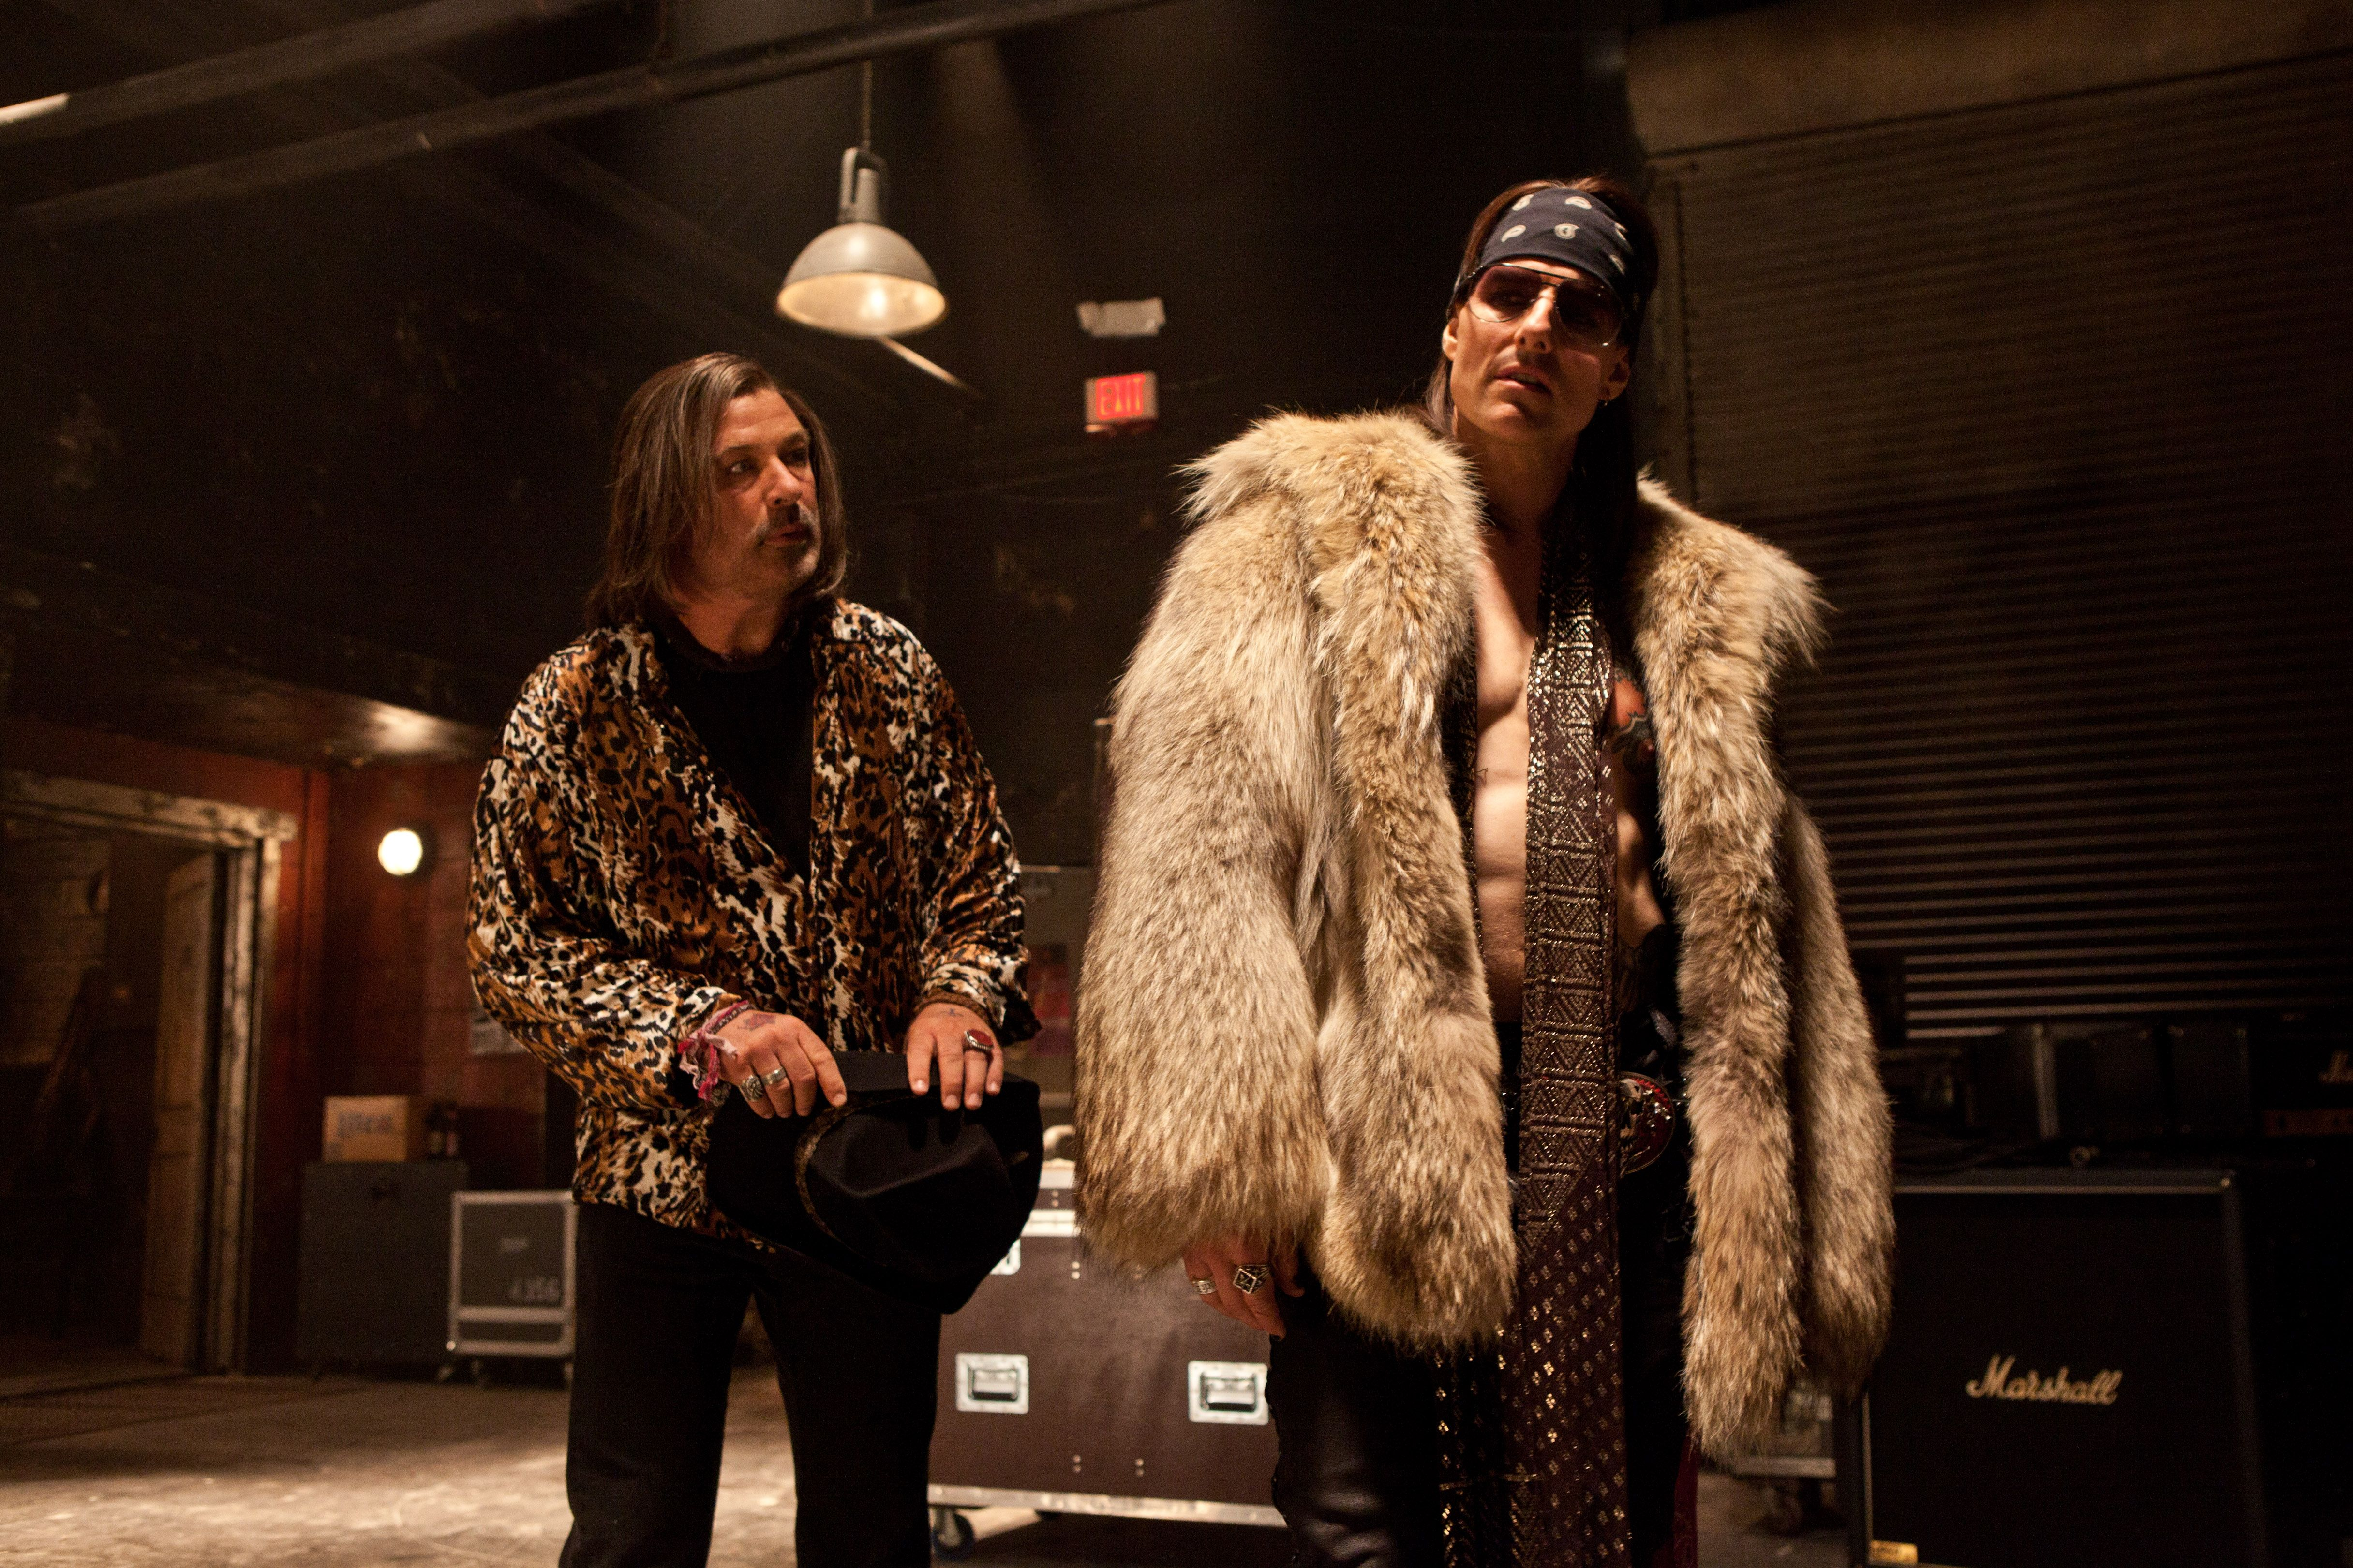 ROCK OF AGES Movie Images Featuring Tom Cruise | Collider Rock Of Ages Movie Tom Cruise